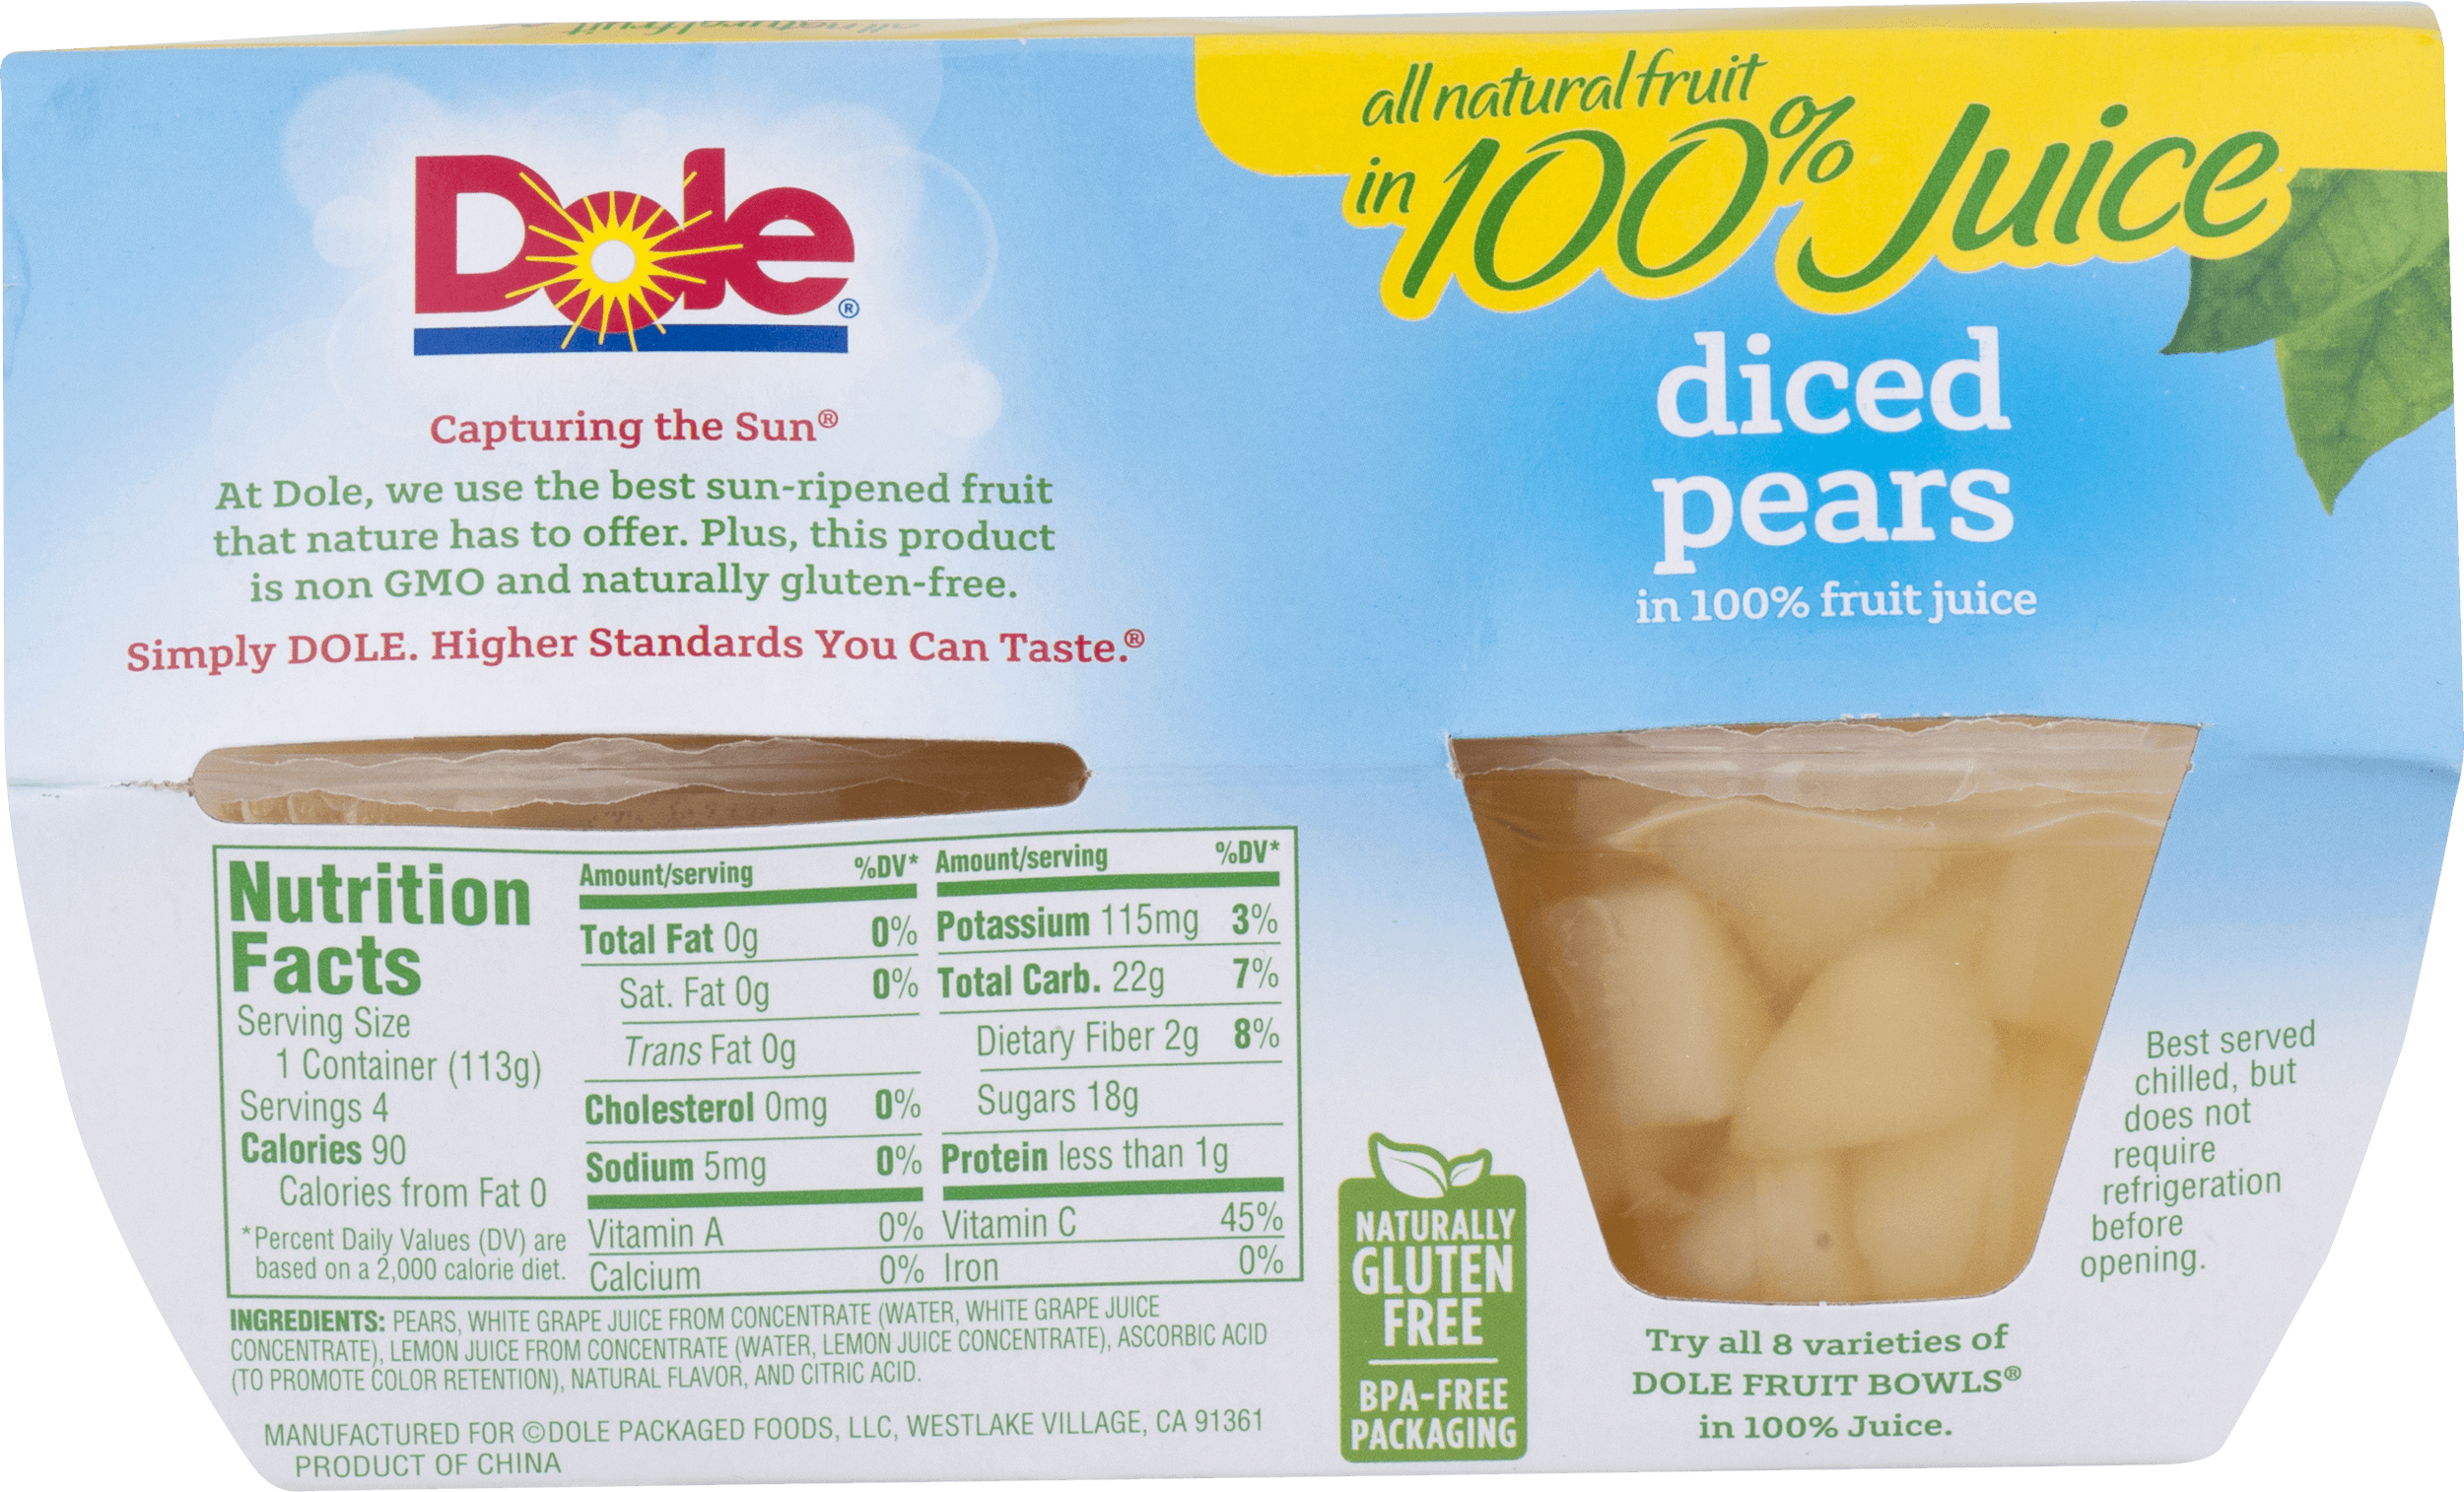 Dole Fruit Bowls Diced Pears in 100